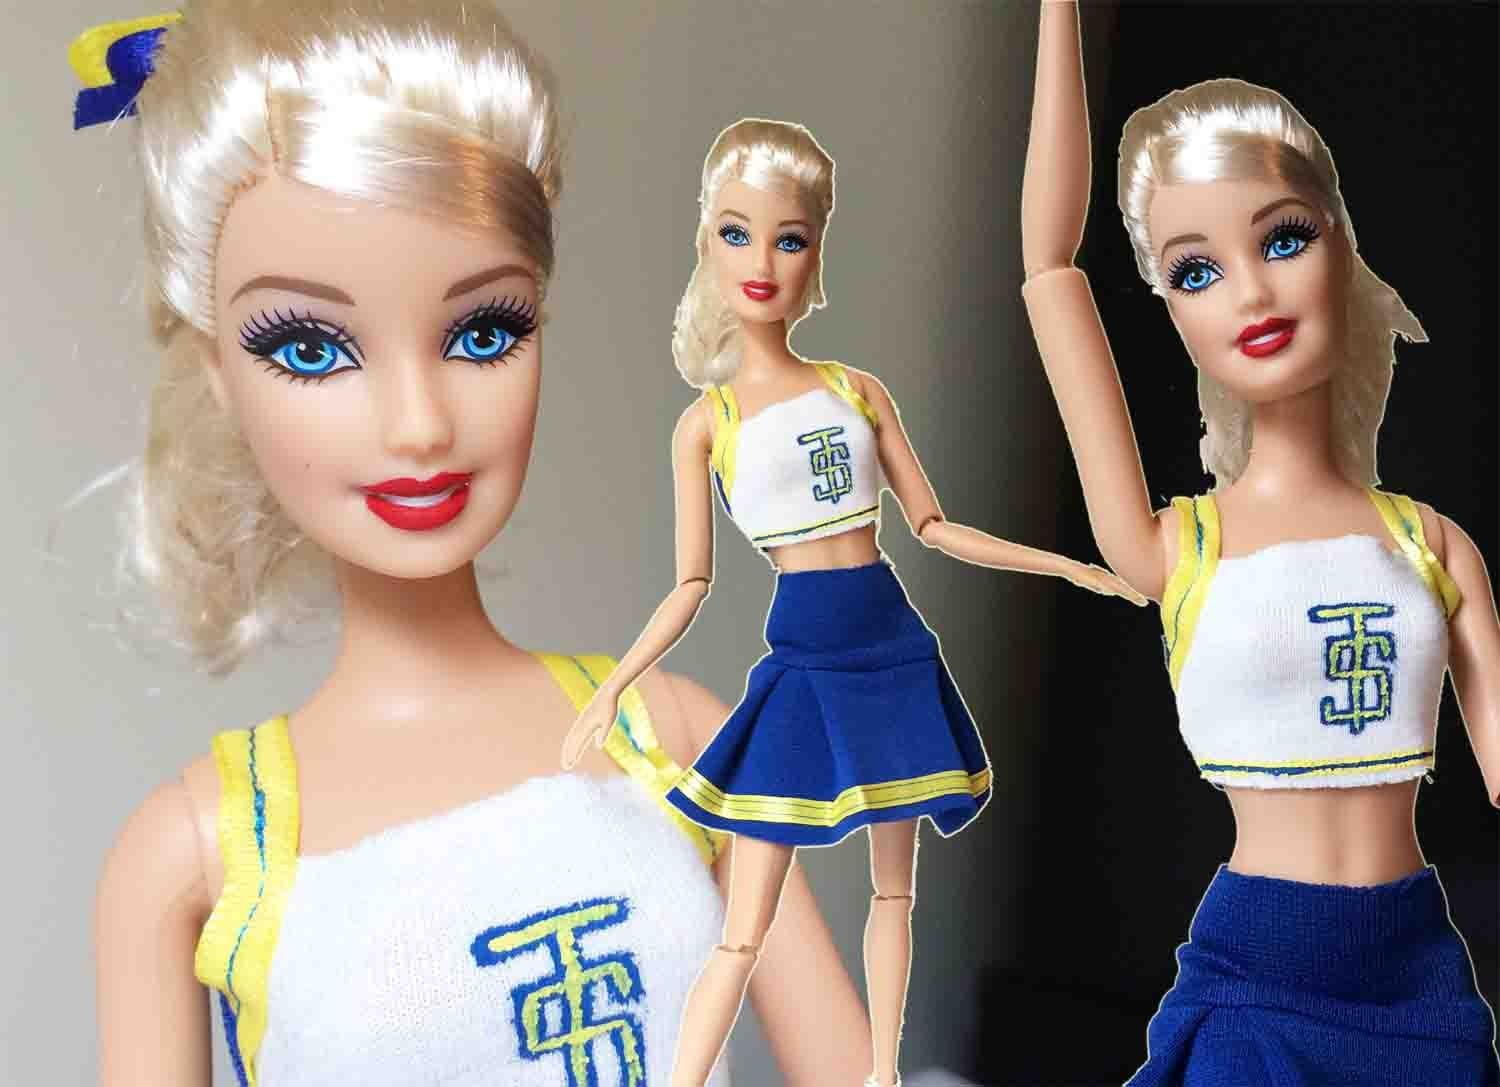 Taylor Swift - Shake It Off - Doll Tutorial - How To Make a Taylor Swift Doll Look-alike